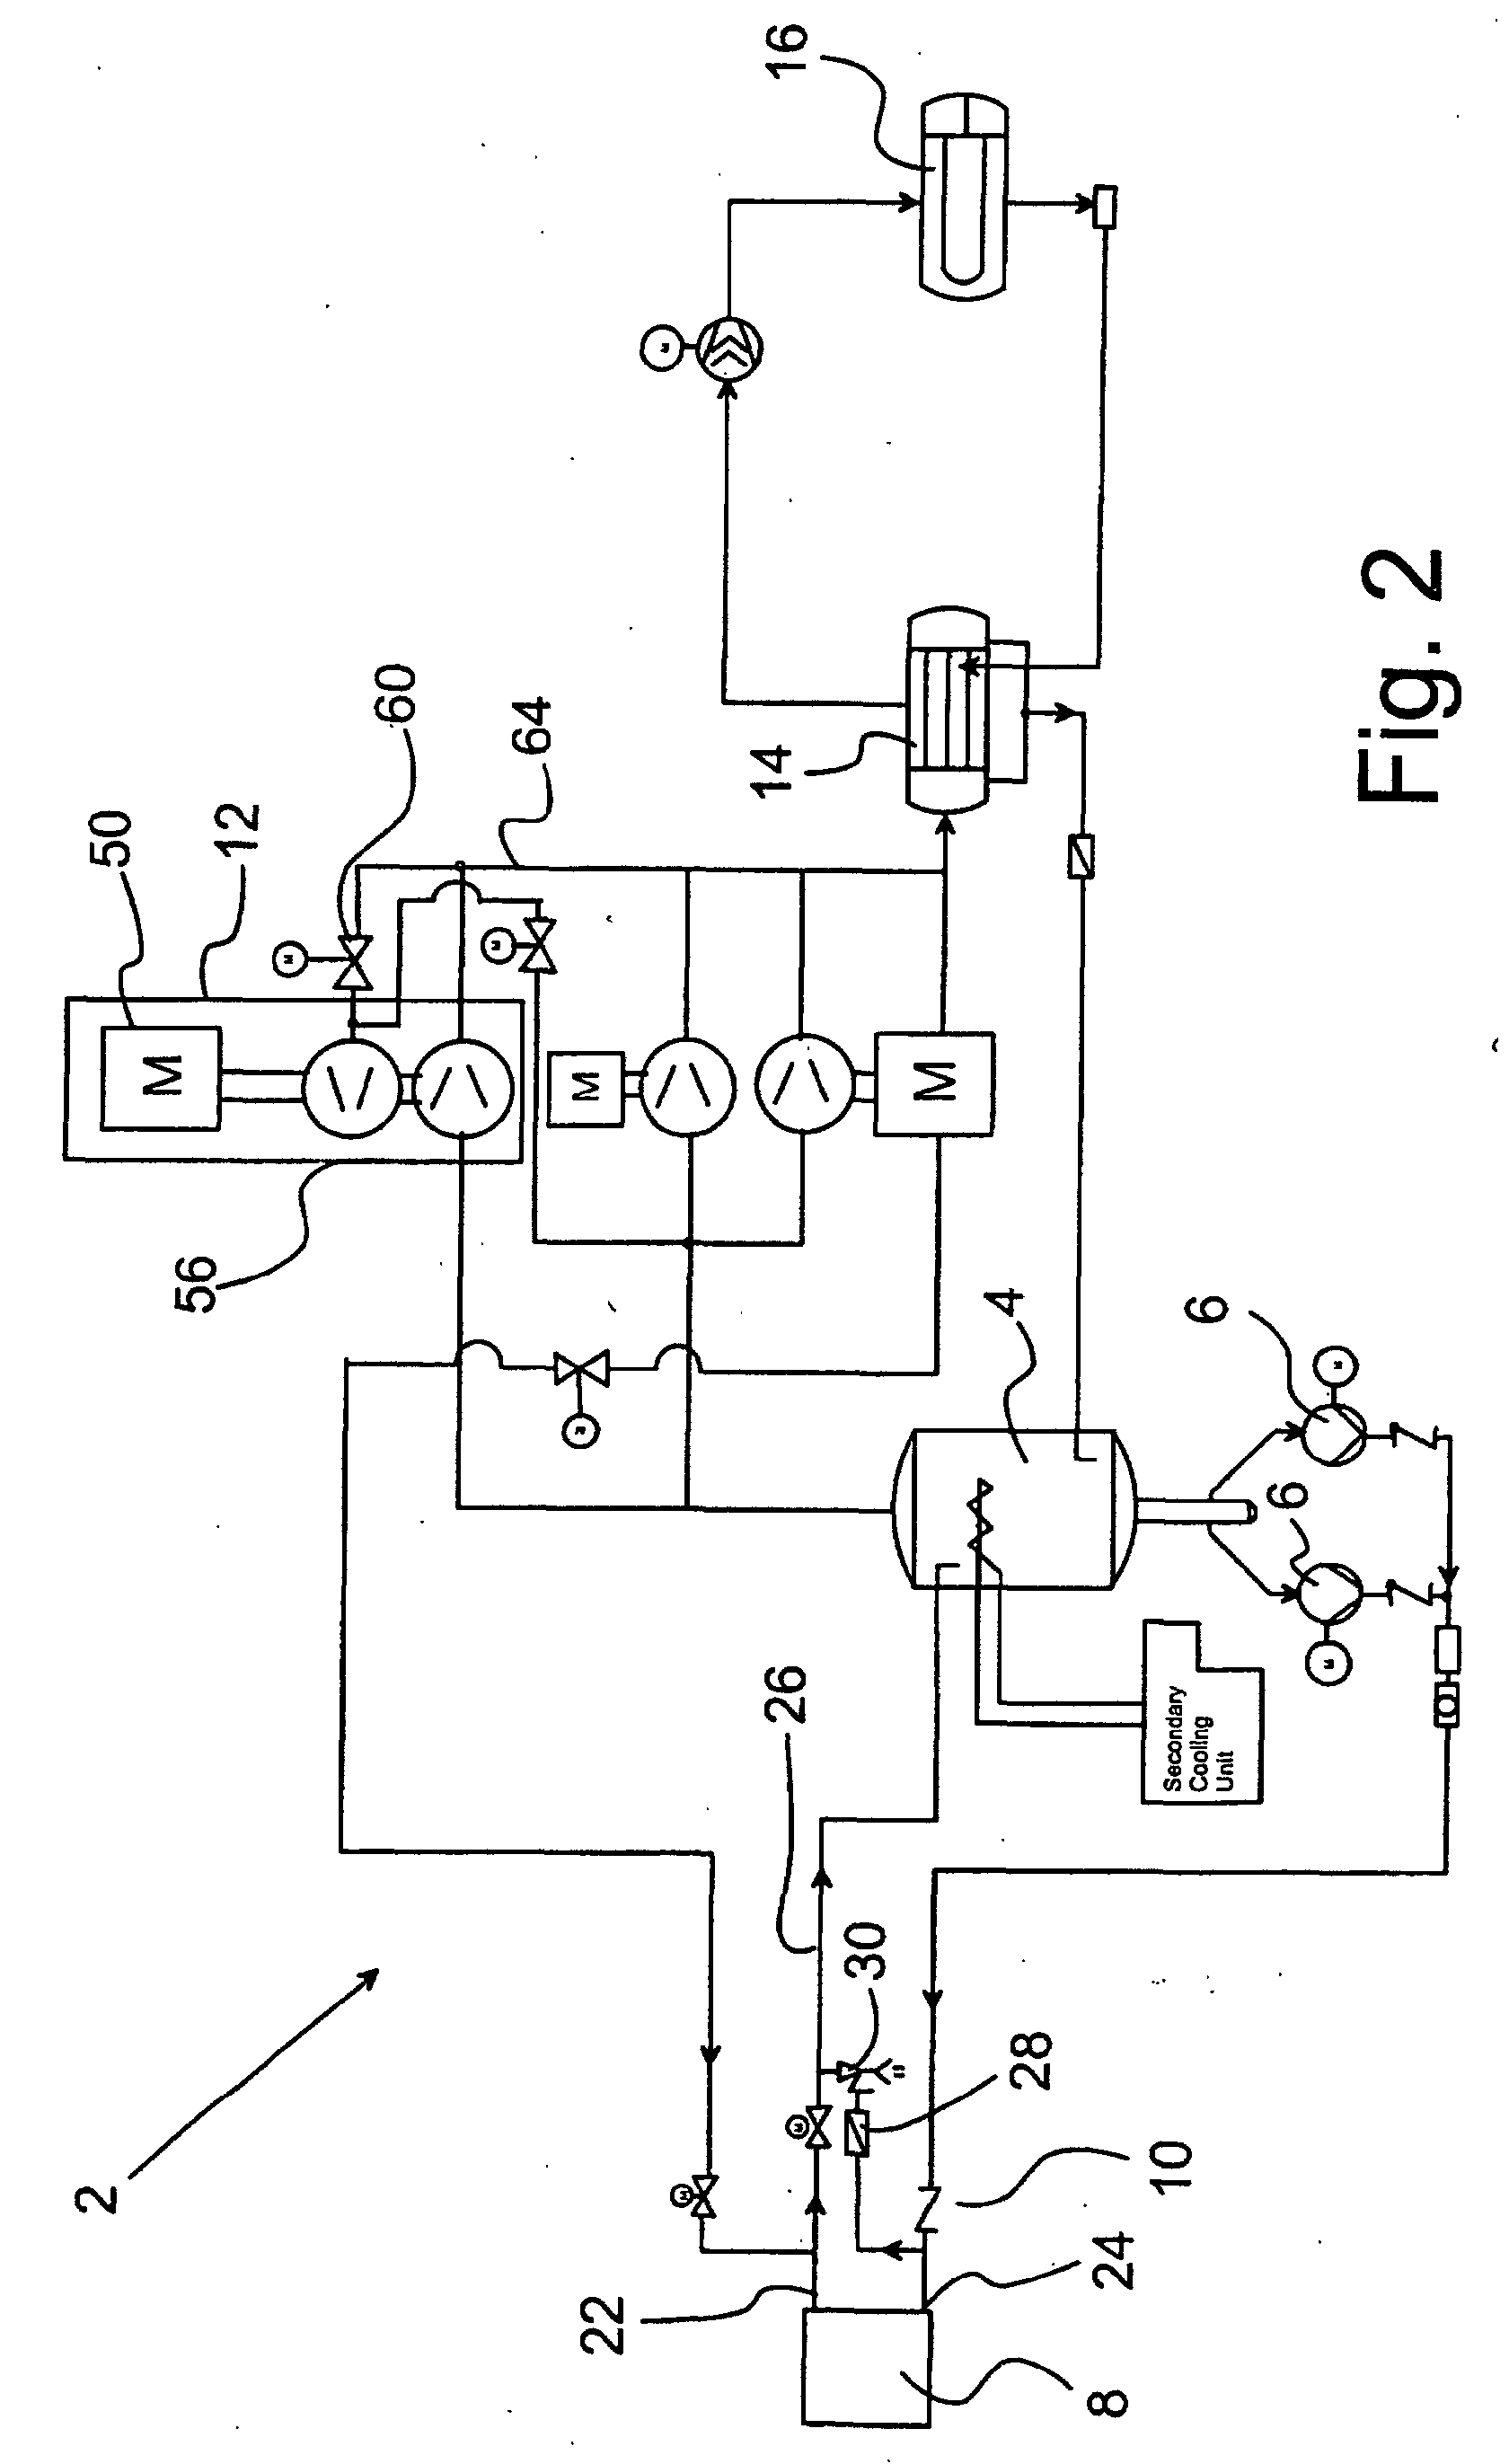 00200001 bohn refrigeration wiring diagrams efcaviation com heatcraft wiring diagram at mifinder.co